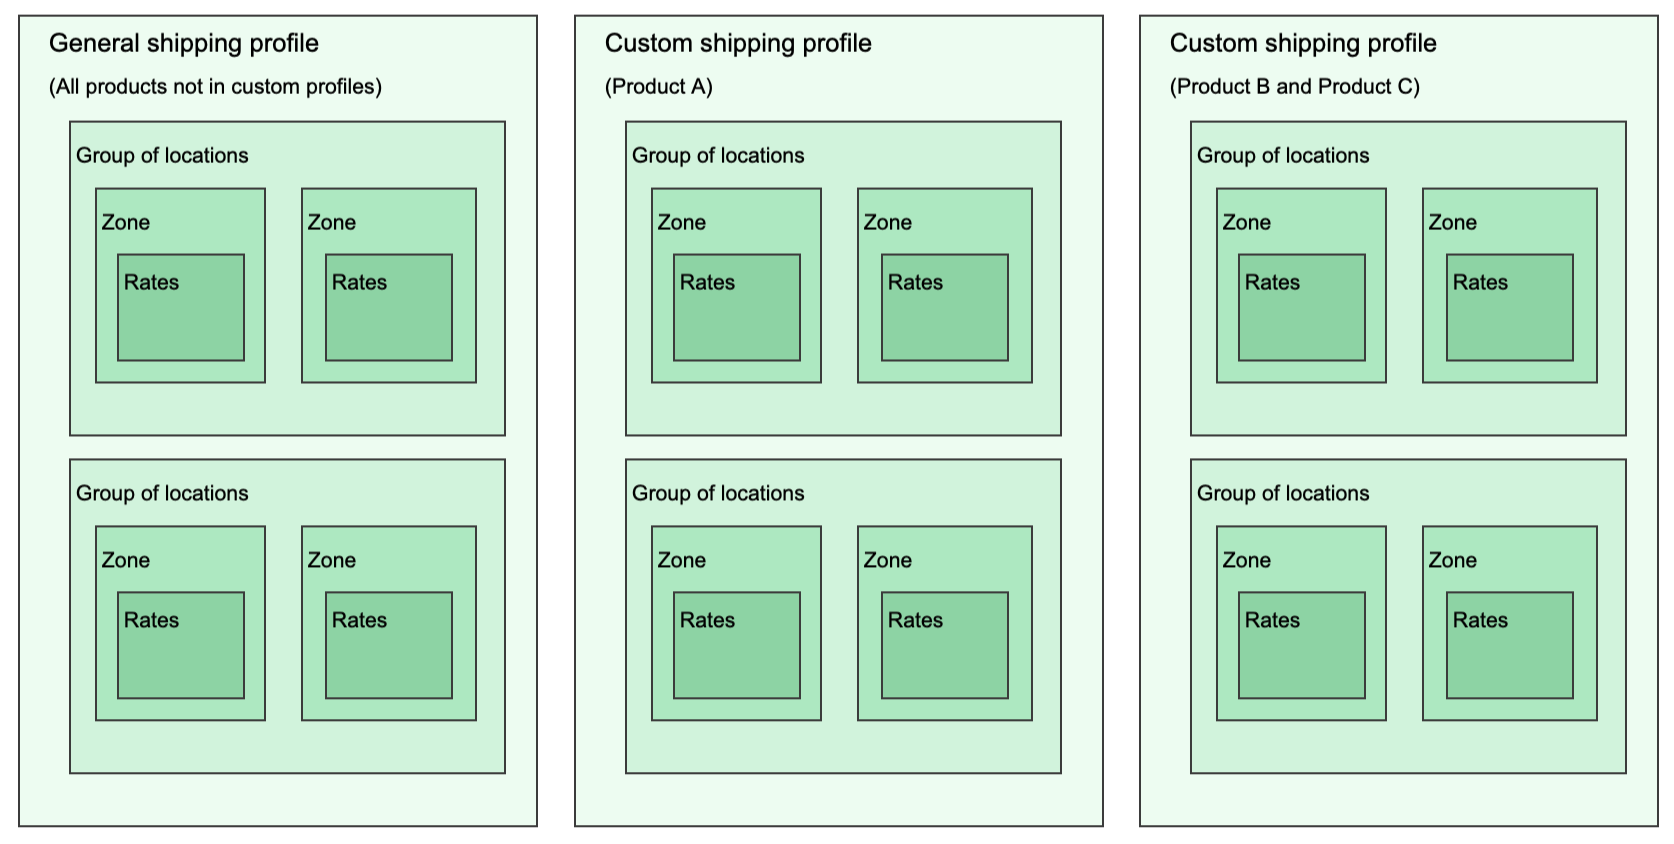 Diagram showing that shipping profiles contain groups of locations that each have their own shipping zones and shipping rates